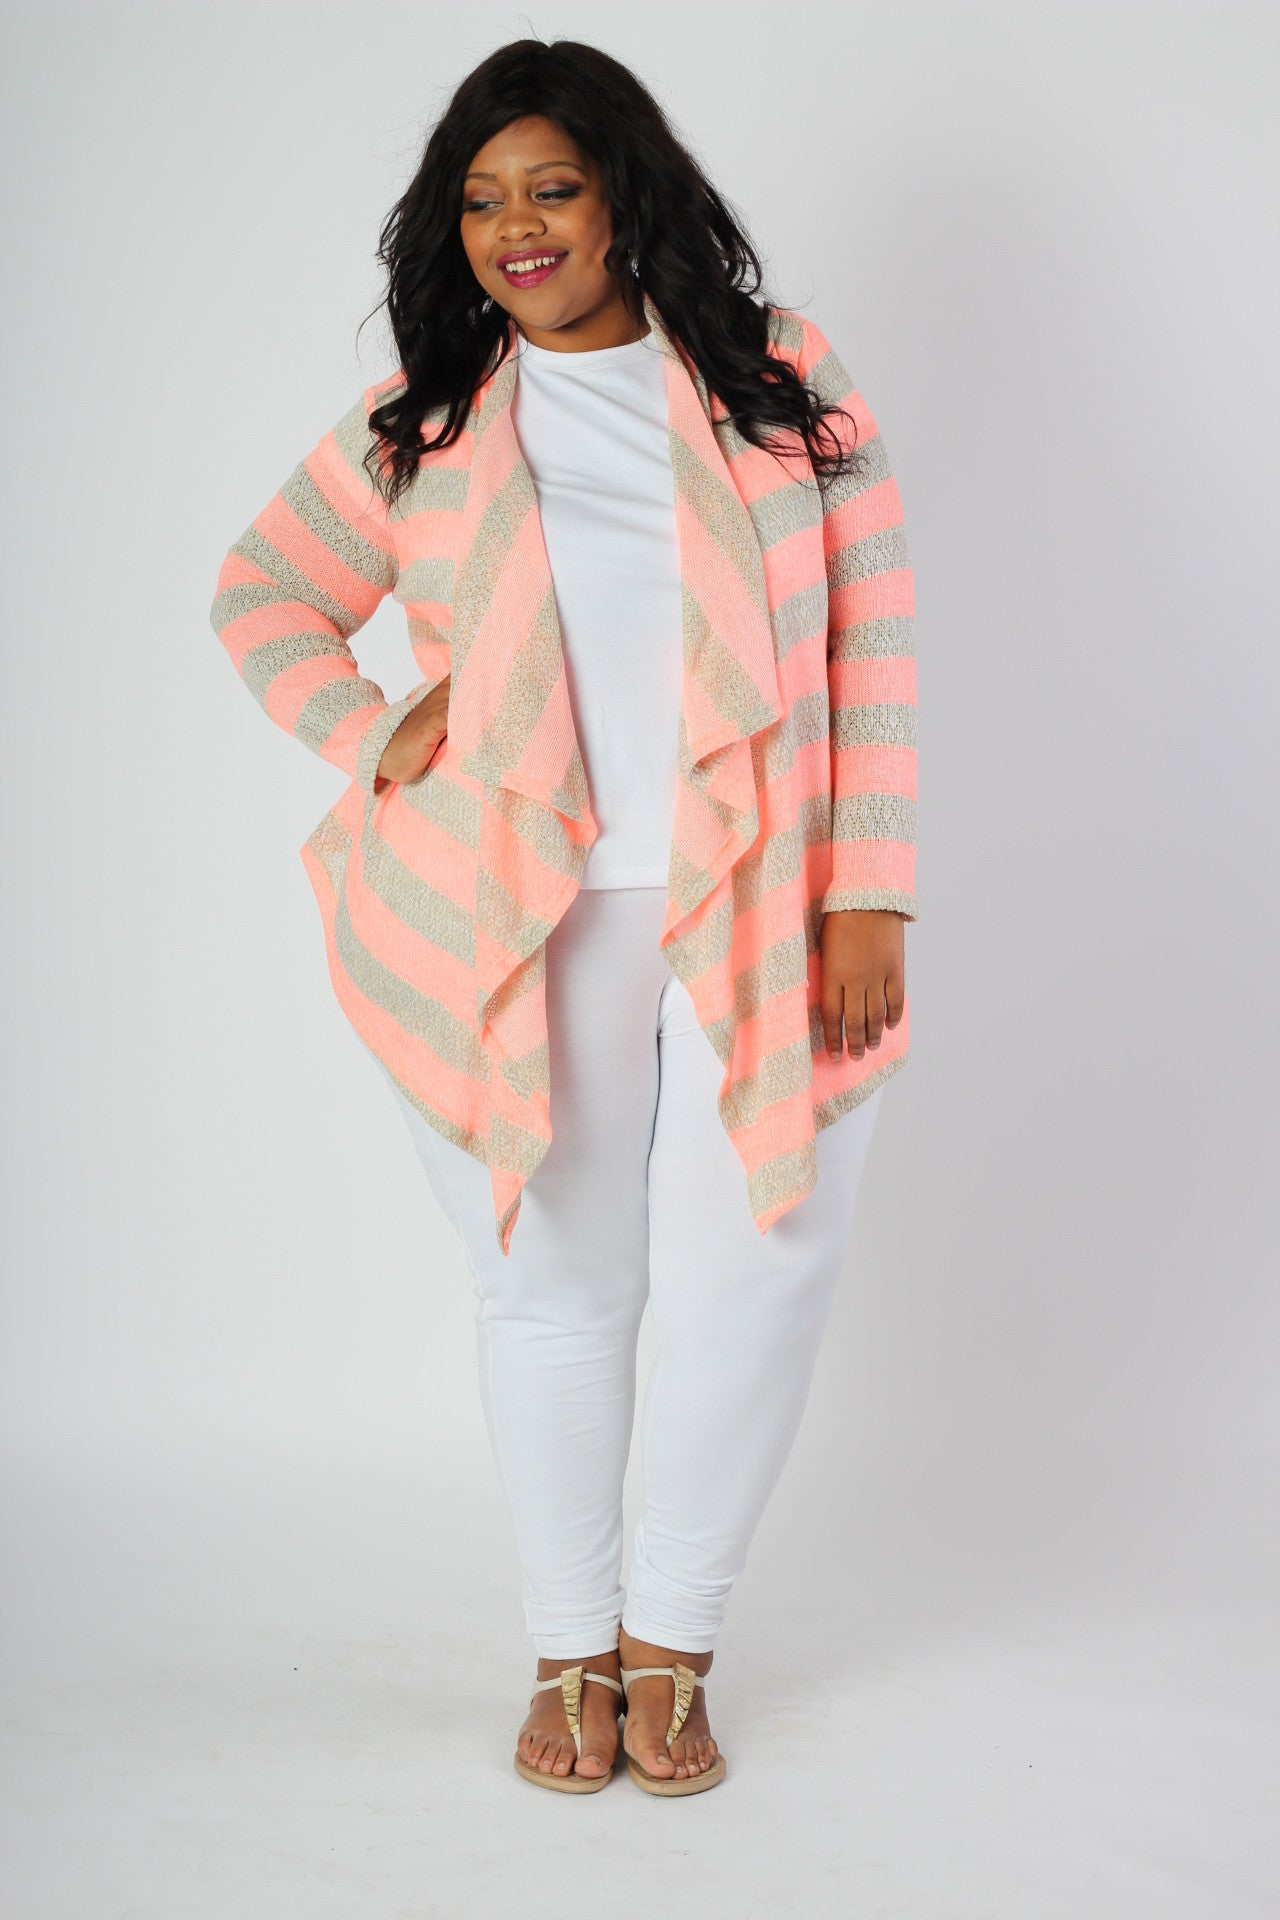 Pair this with: This is the perfect cardigan for spring and summer! Bright beautiful colors, but lightweight so you don't get over heated. 100% Polyester Hand wash with cold water Hang or line dry See it in pink . Front length Back length Arm hole Wrist opening Size:14/16 34